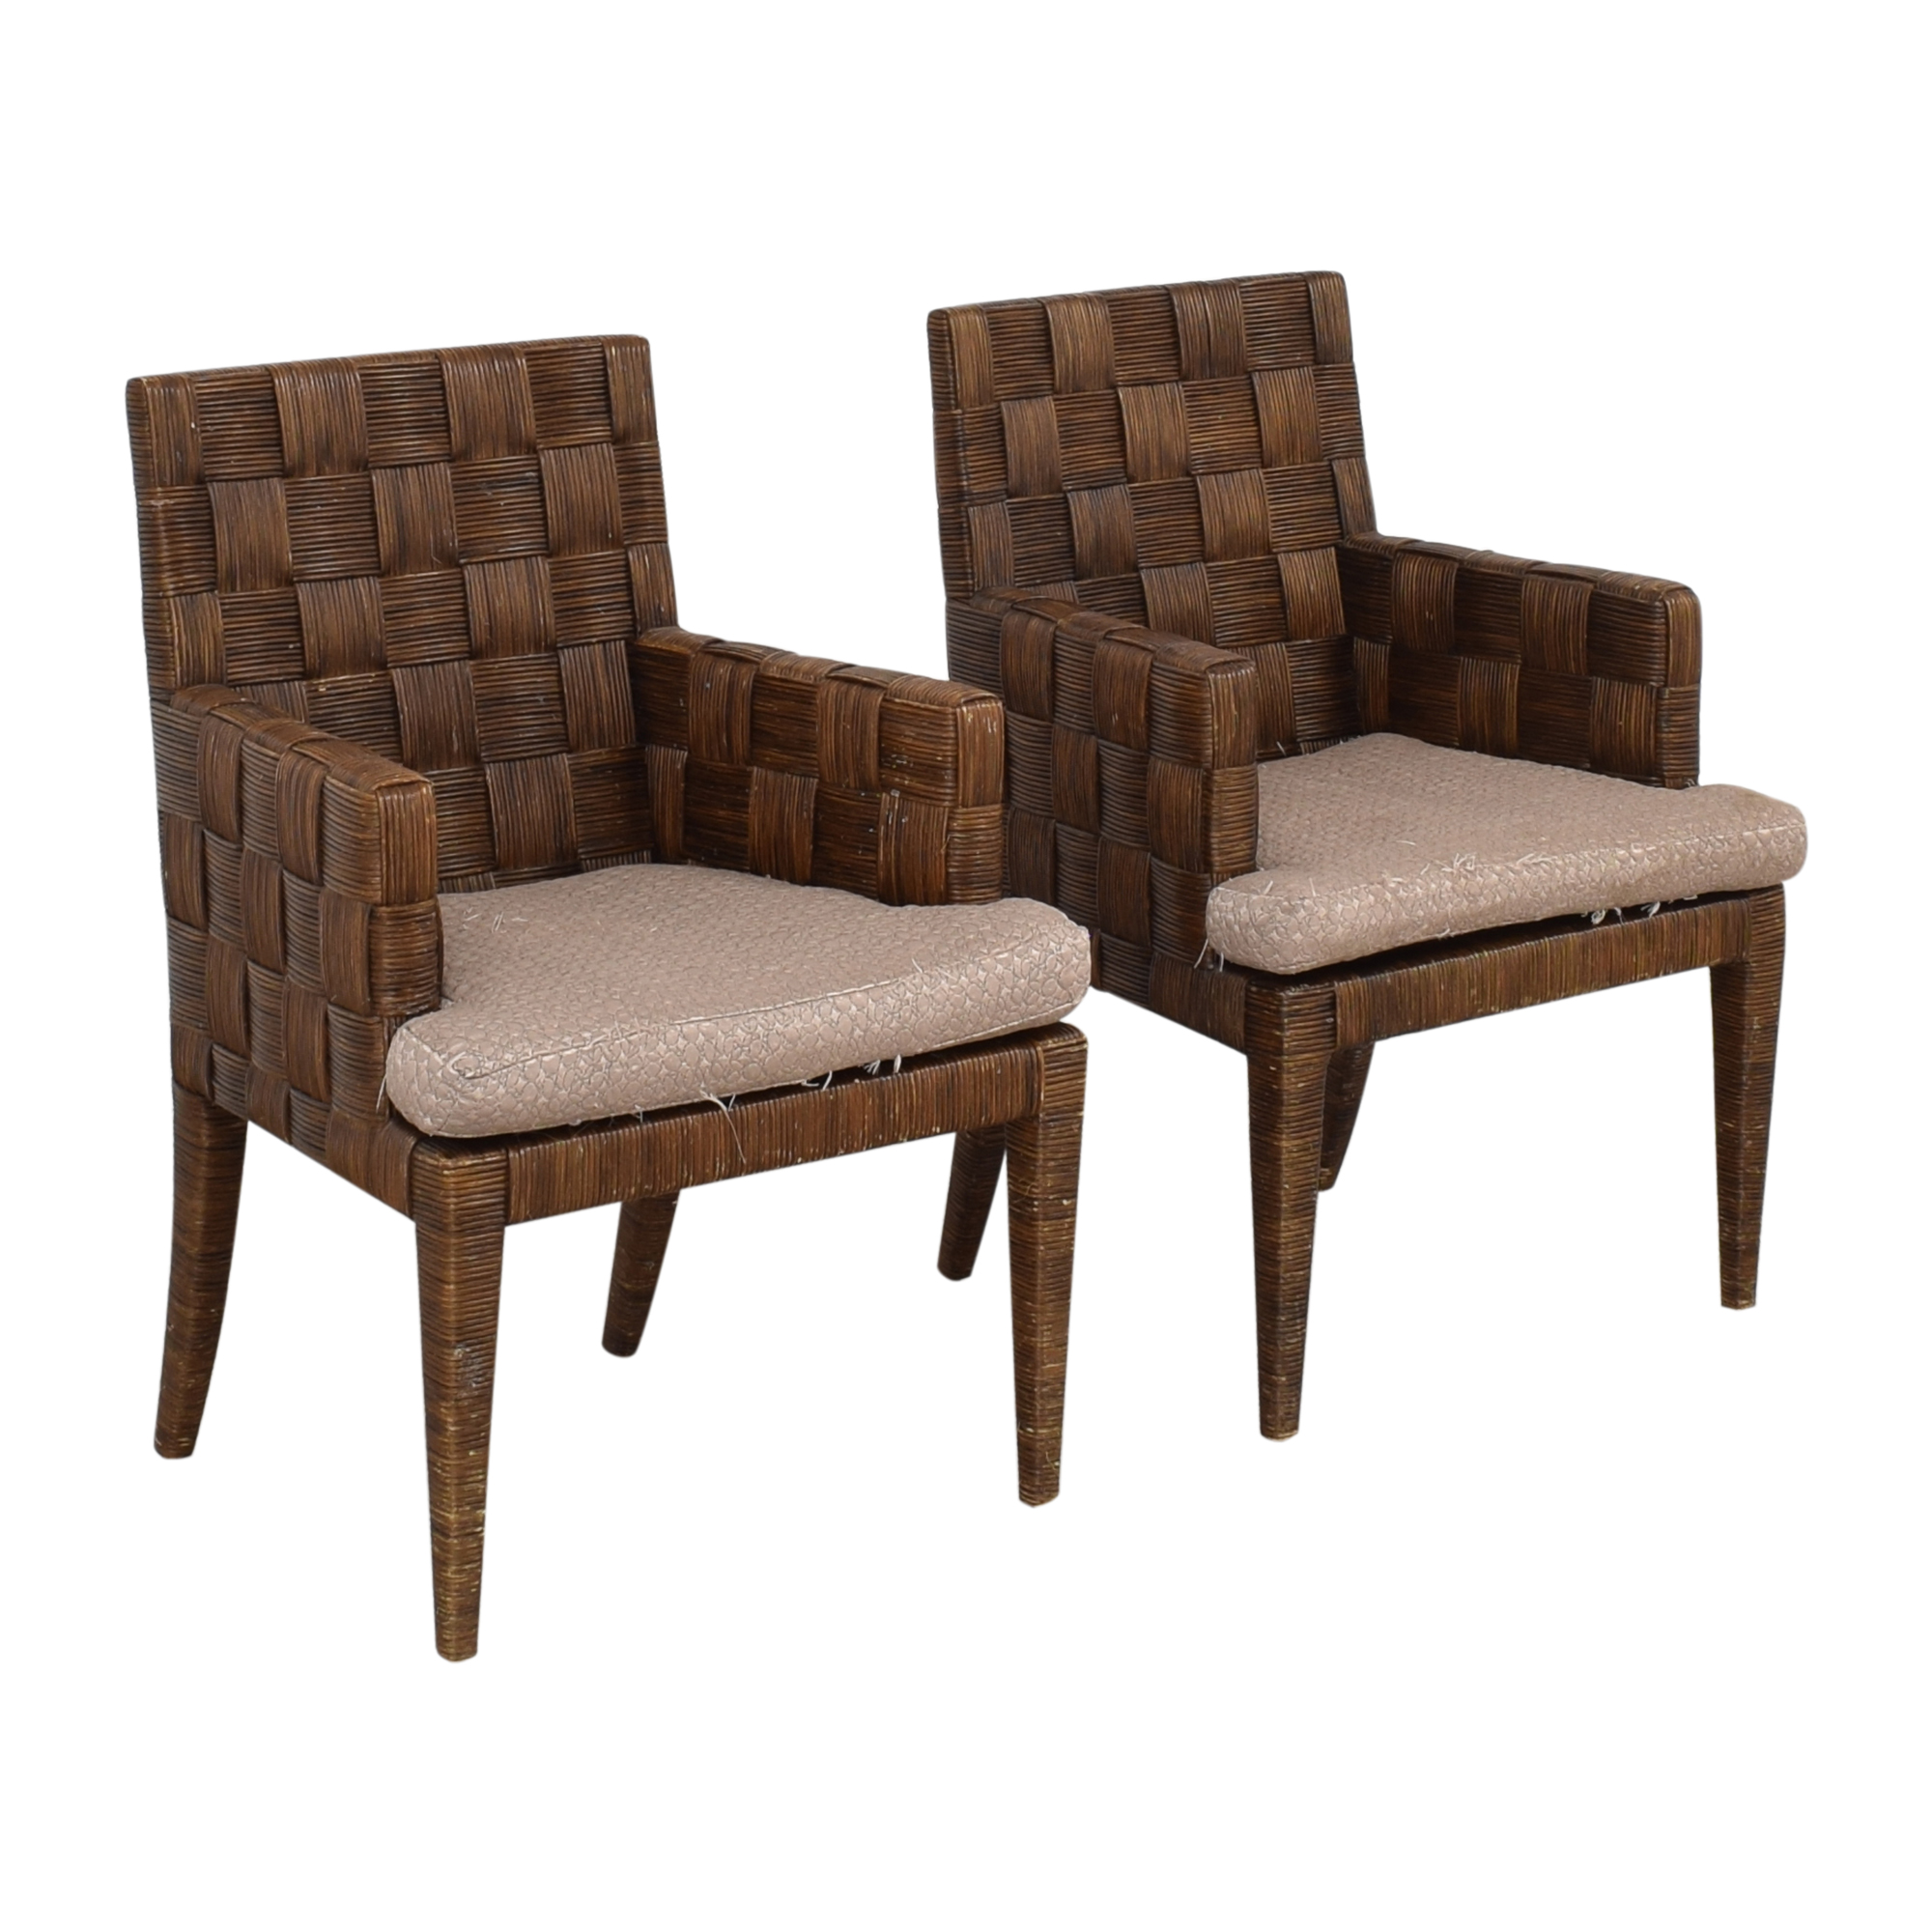 shop Donghia by John Hutton Block Island Dining Armchairs Donghia